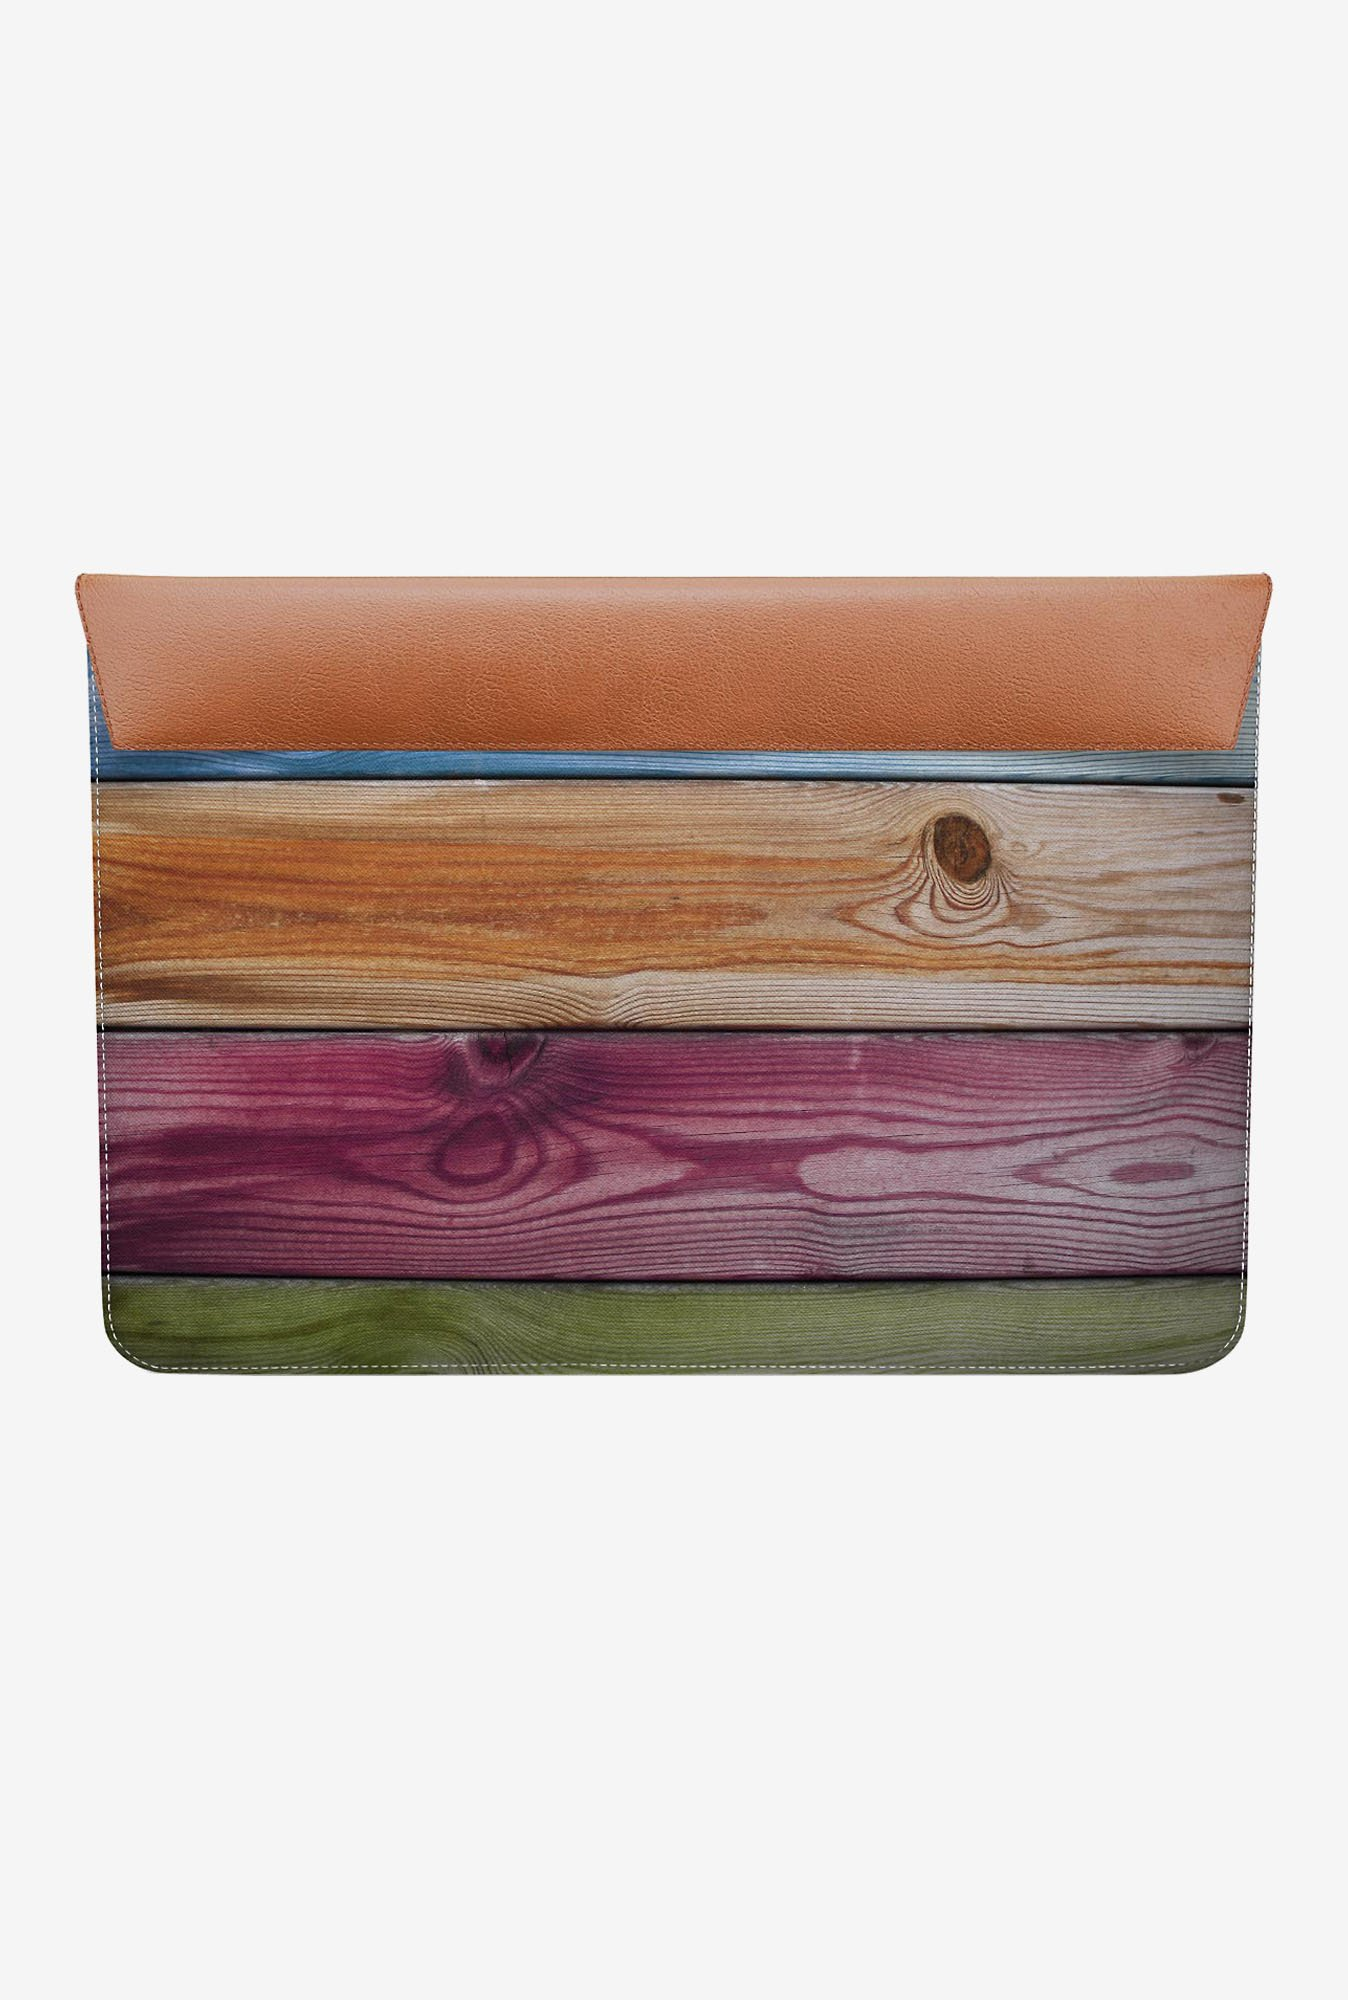 DailyObjects Wooden Rainbow MacBook Air 13 Envelope Sleeve